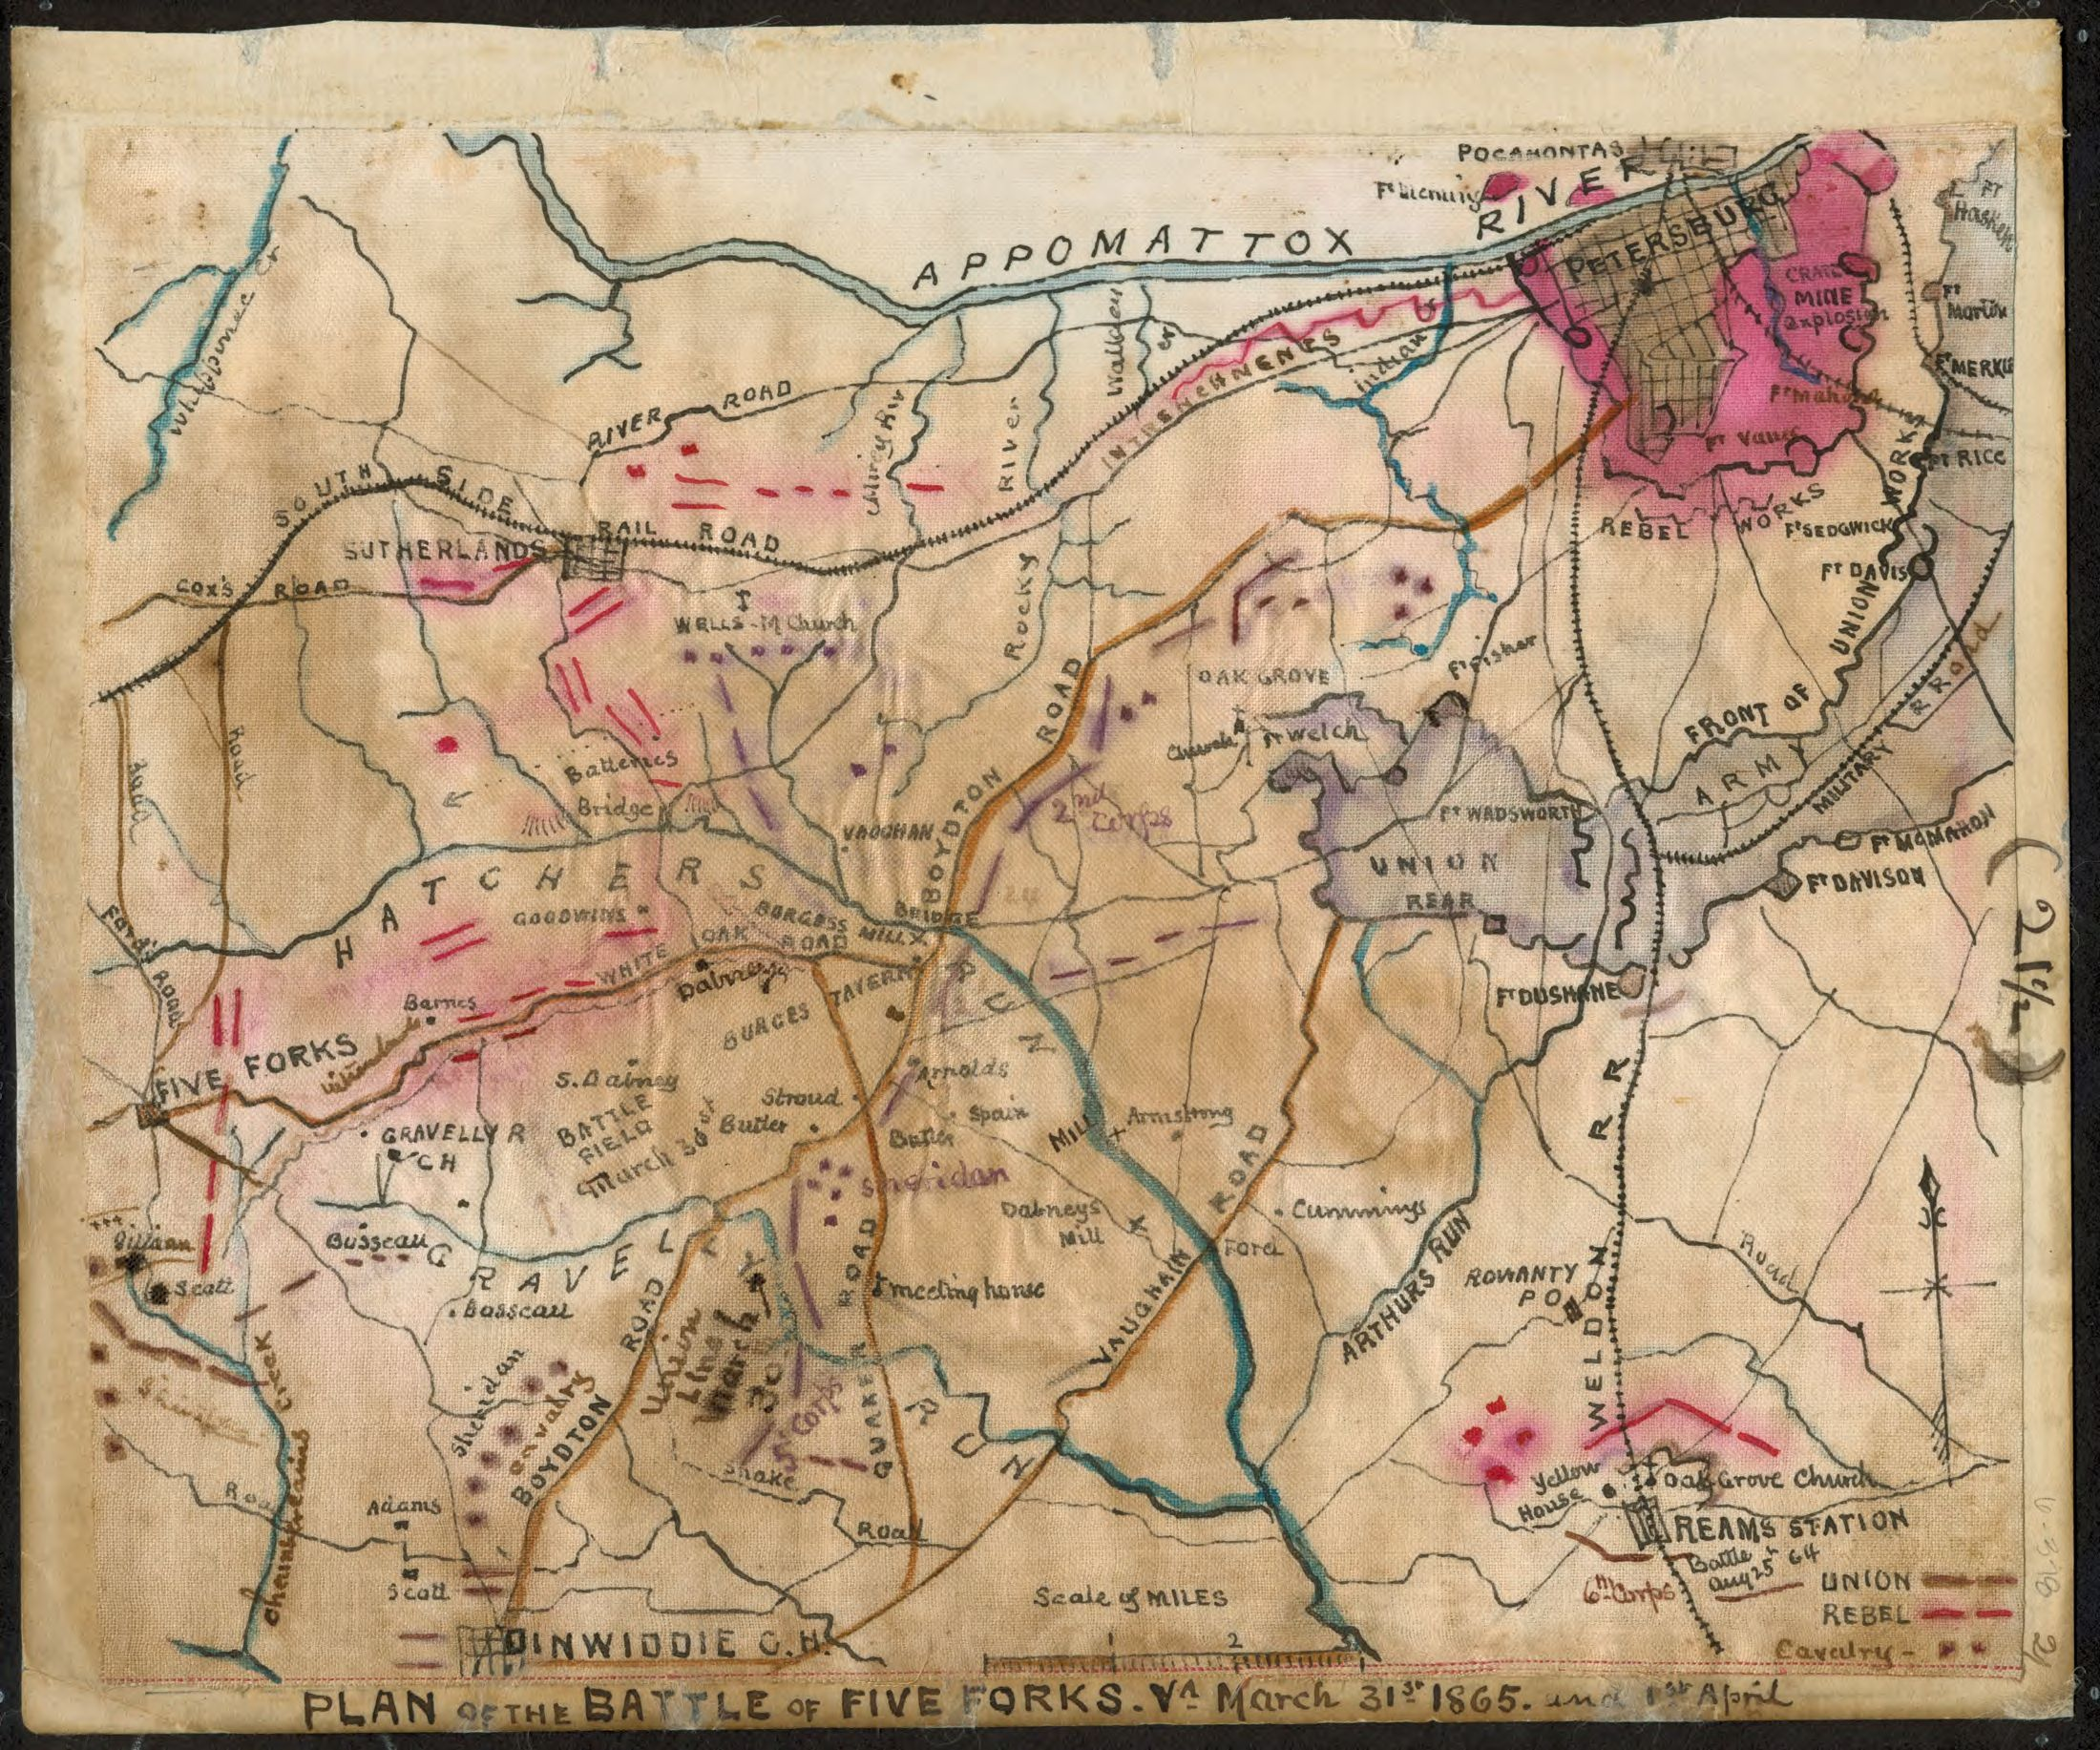 Plan Of The Battle Of Five Forks Va March 31st 1865 And